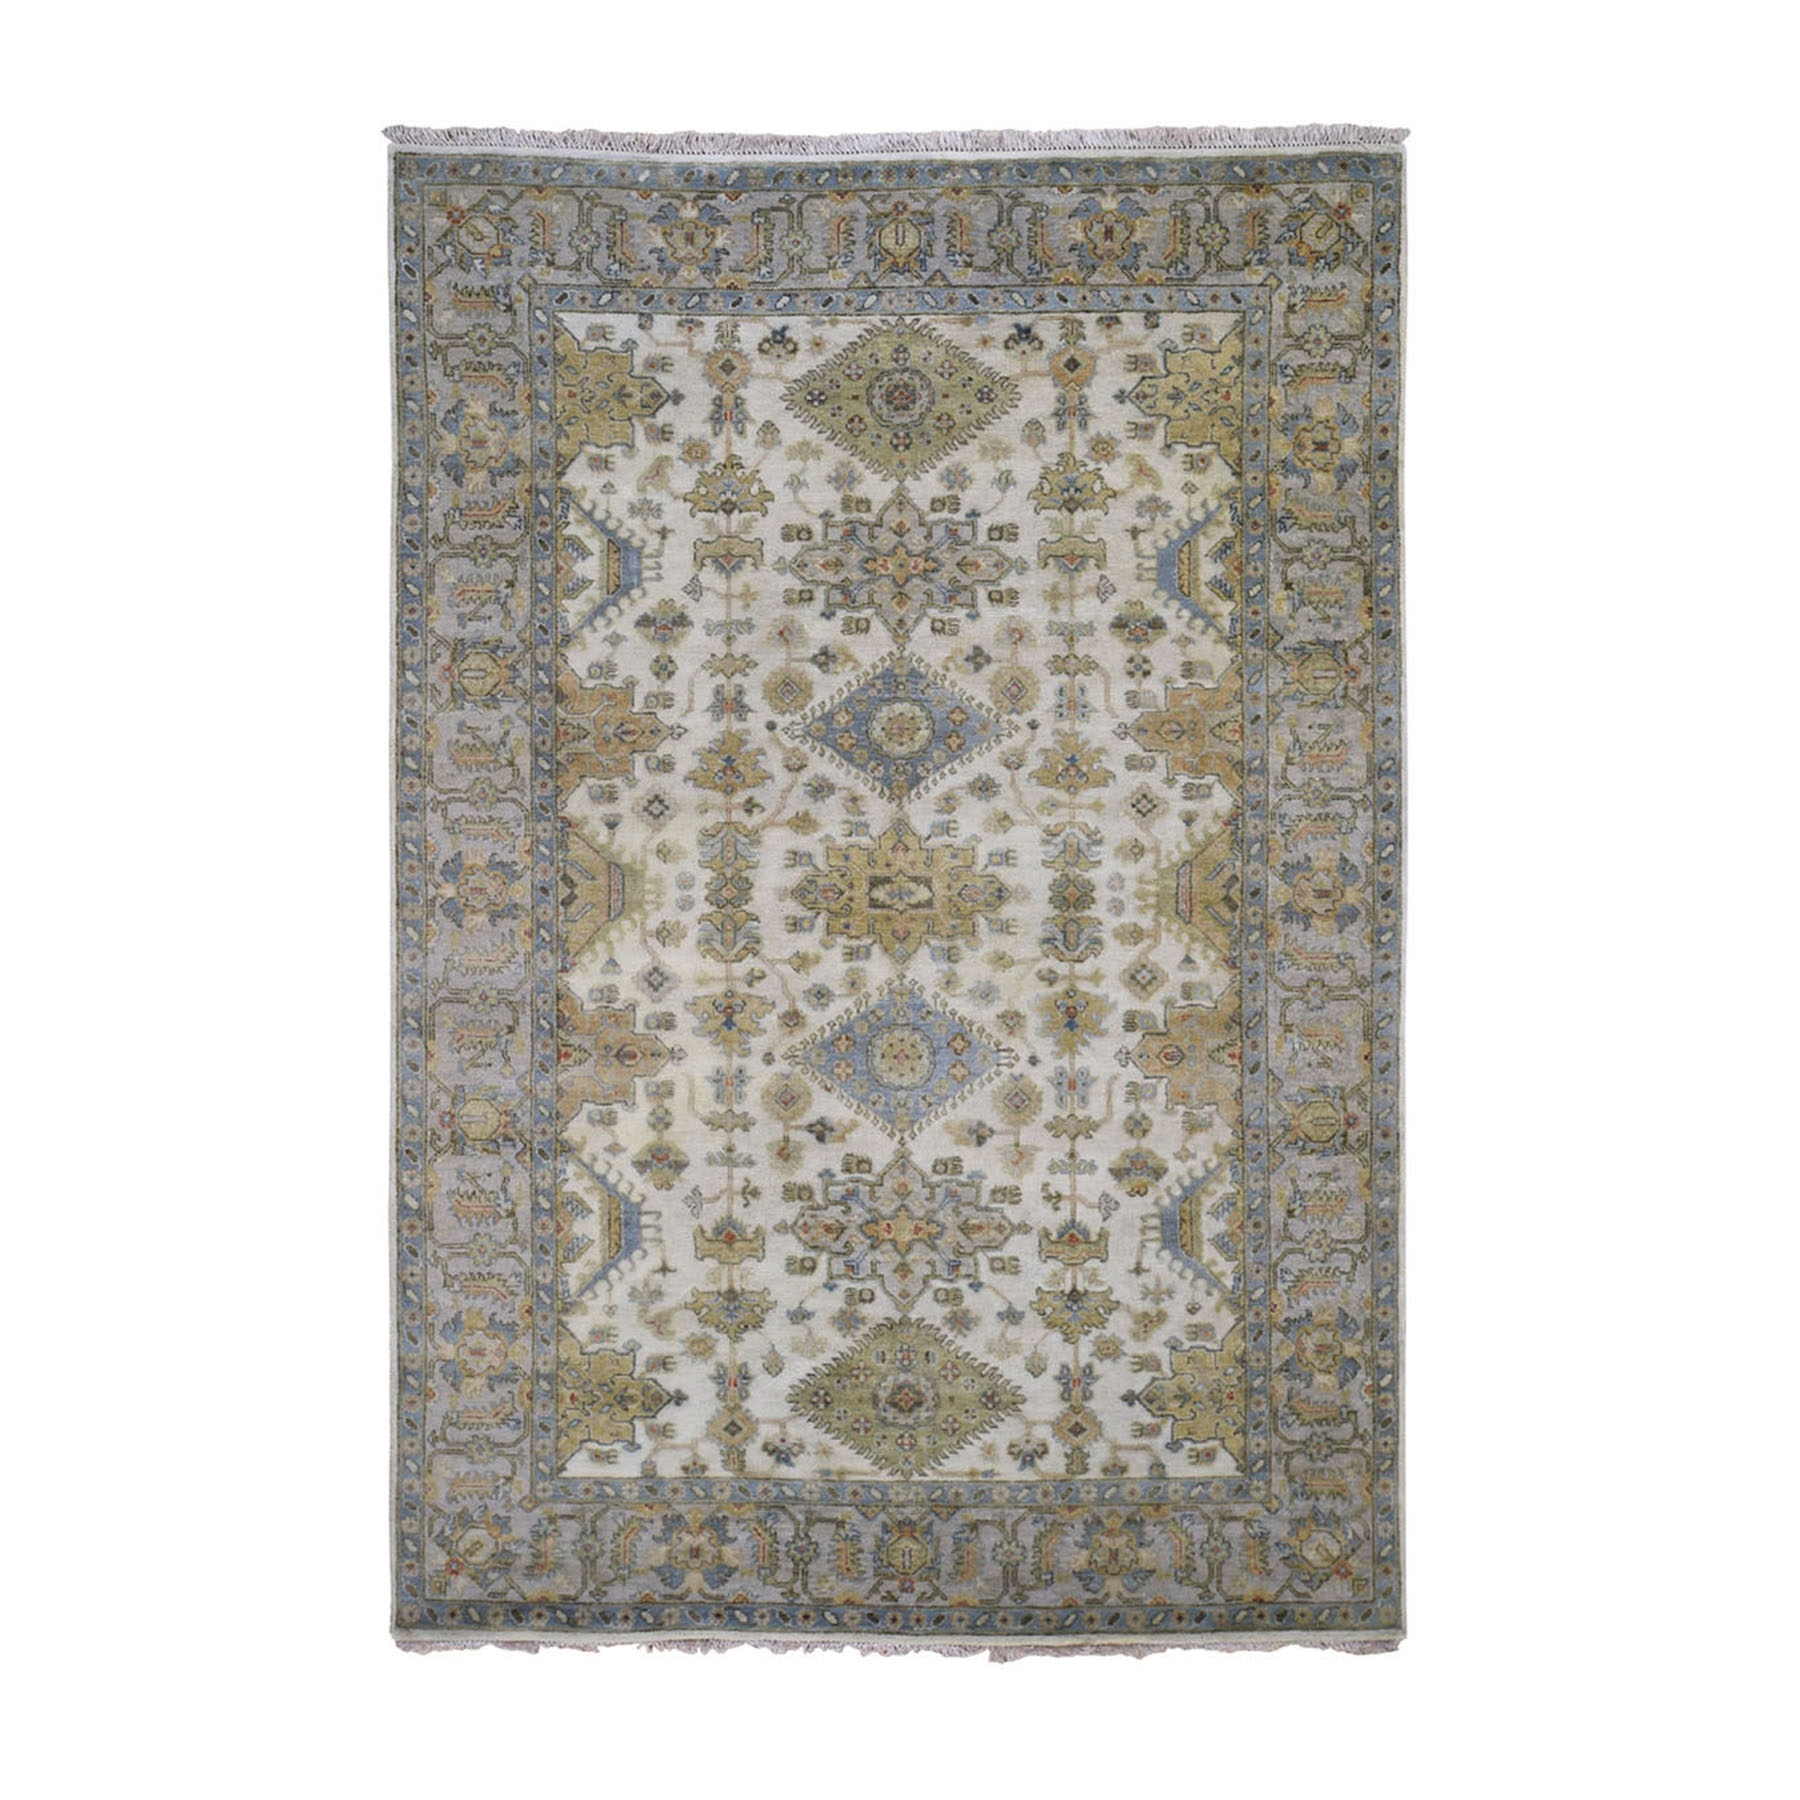 """5'X6'10"""" Ivory Karajeh Design Pure Wool Hand Knotted Oriental Rug moad89e0"""